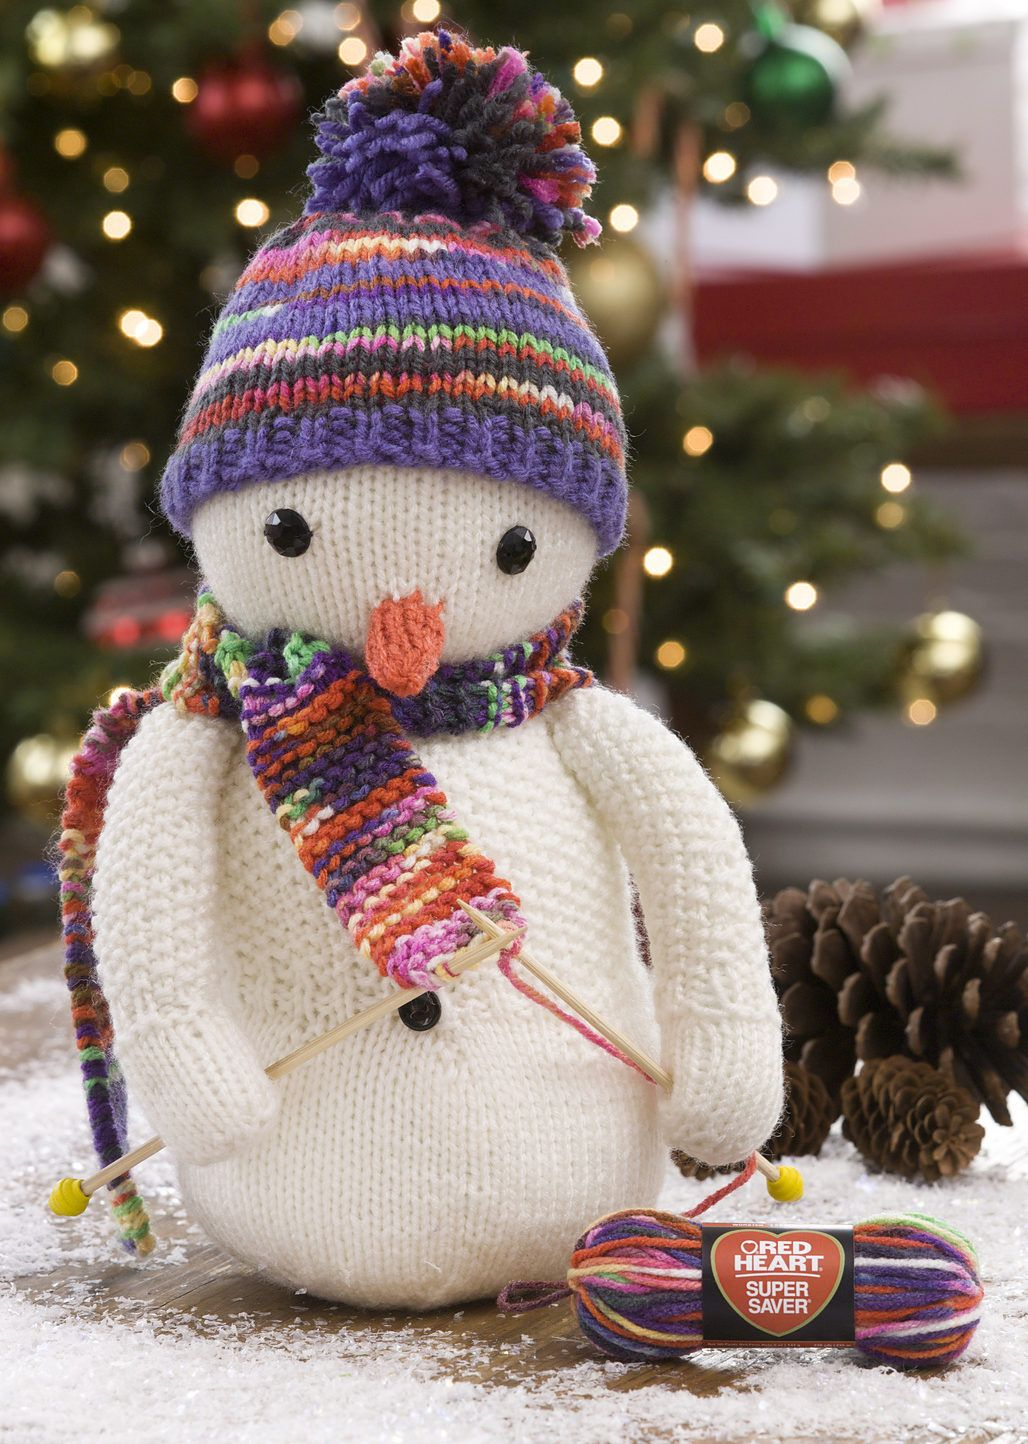 Free knitting pattern for knitting snowman this snow knitter free knitting pattern for knitting snowman this snow knitter softie is a perfect decoration or bankloansurffo Images